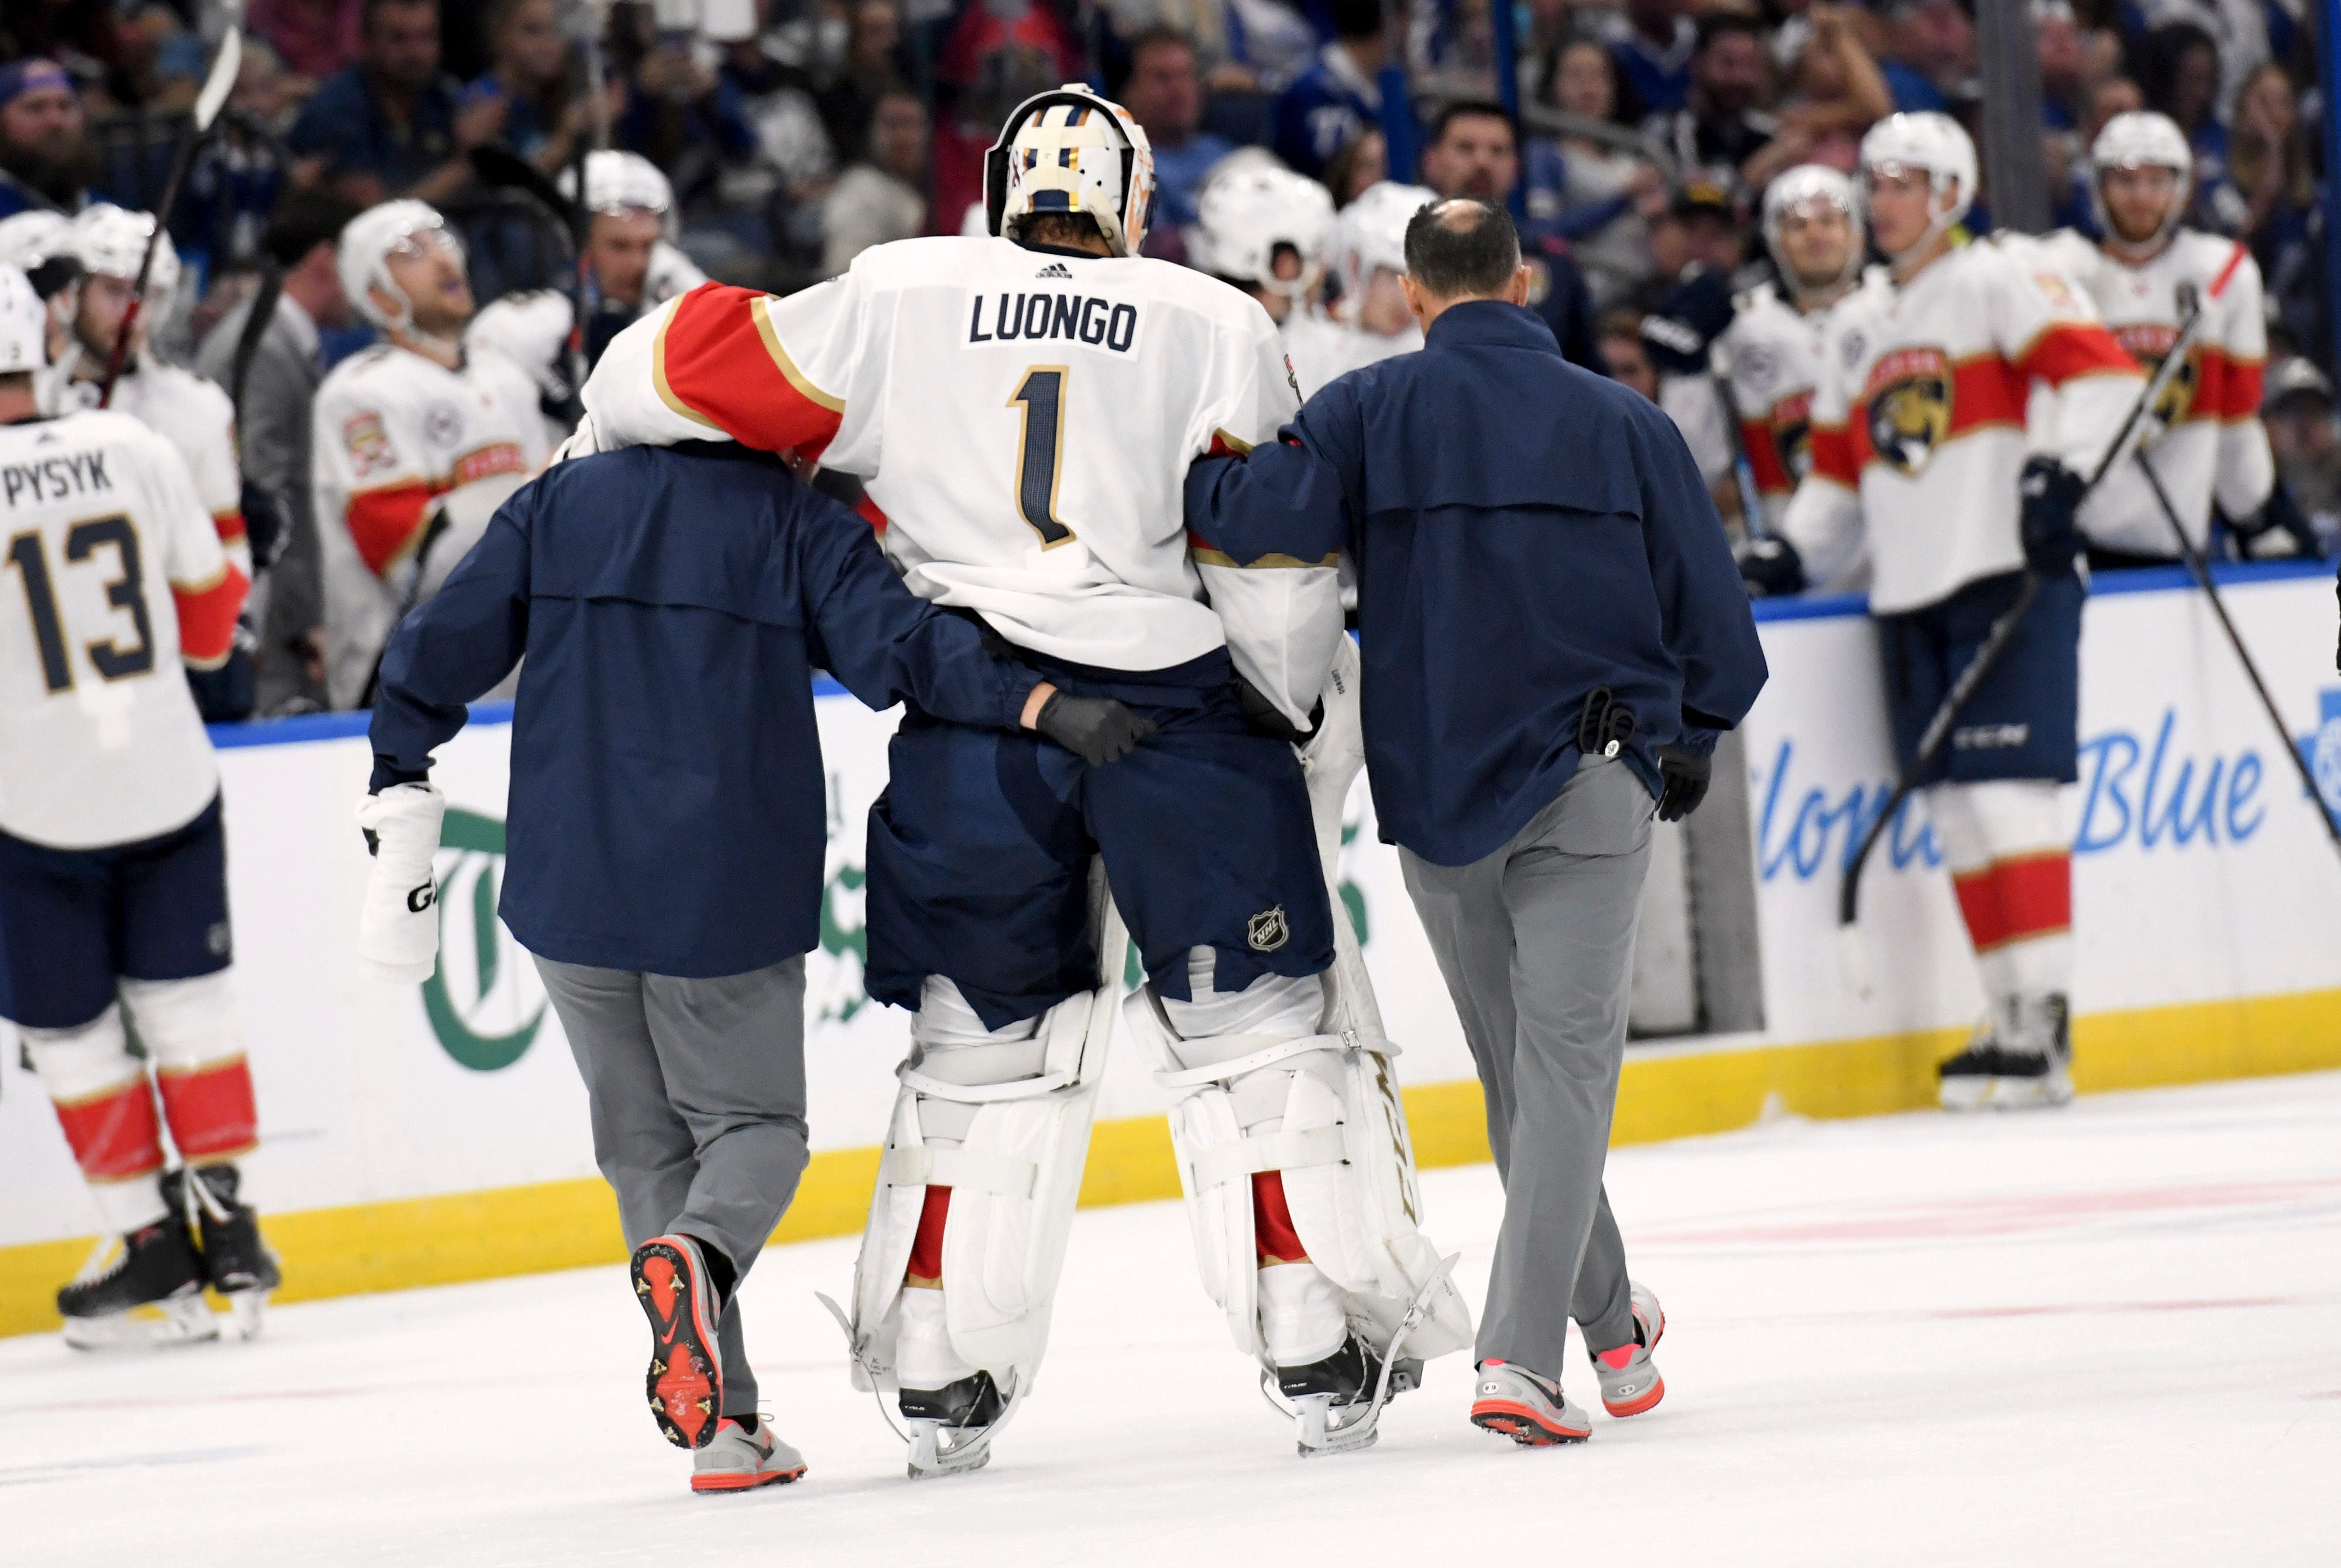 Roberto Luongo helped off ice during Panthers' opener